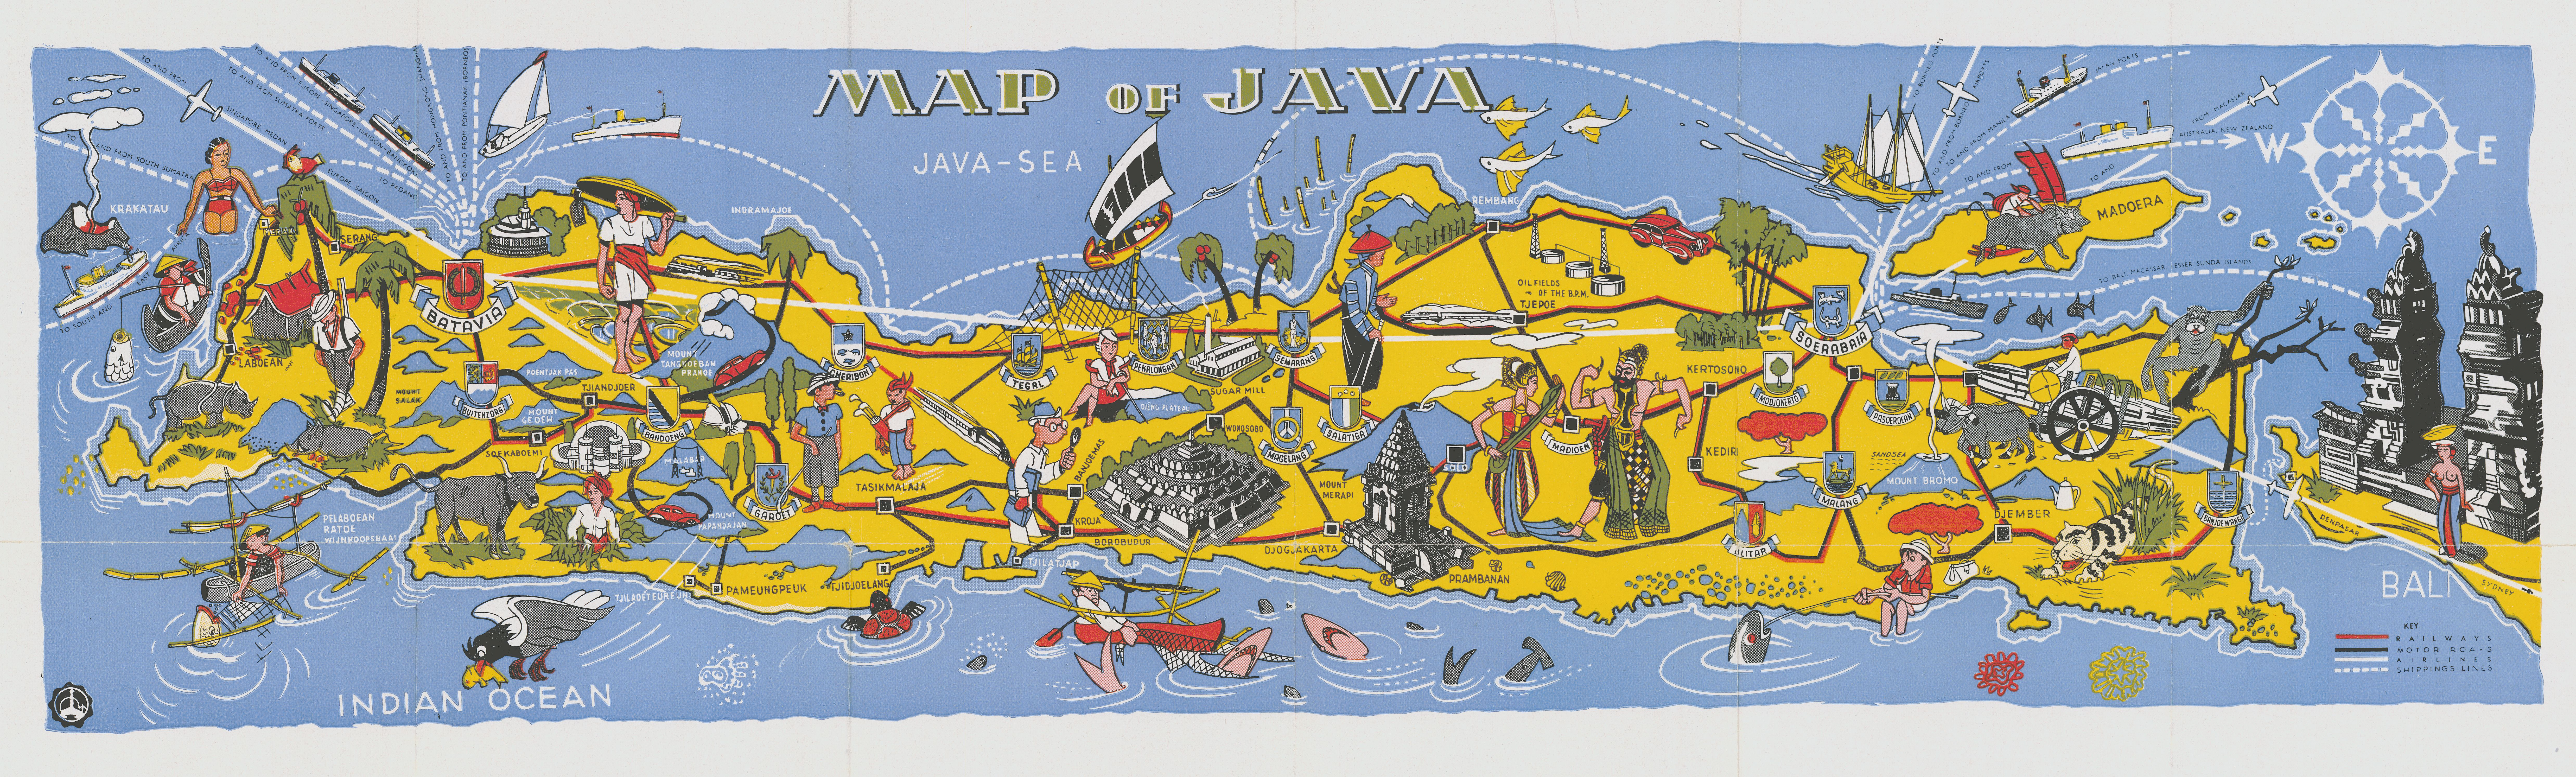 Fascinating Historical Picture of Java in 1938